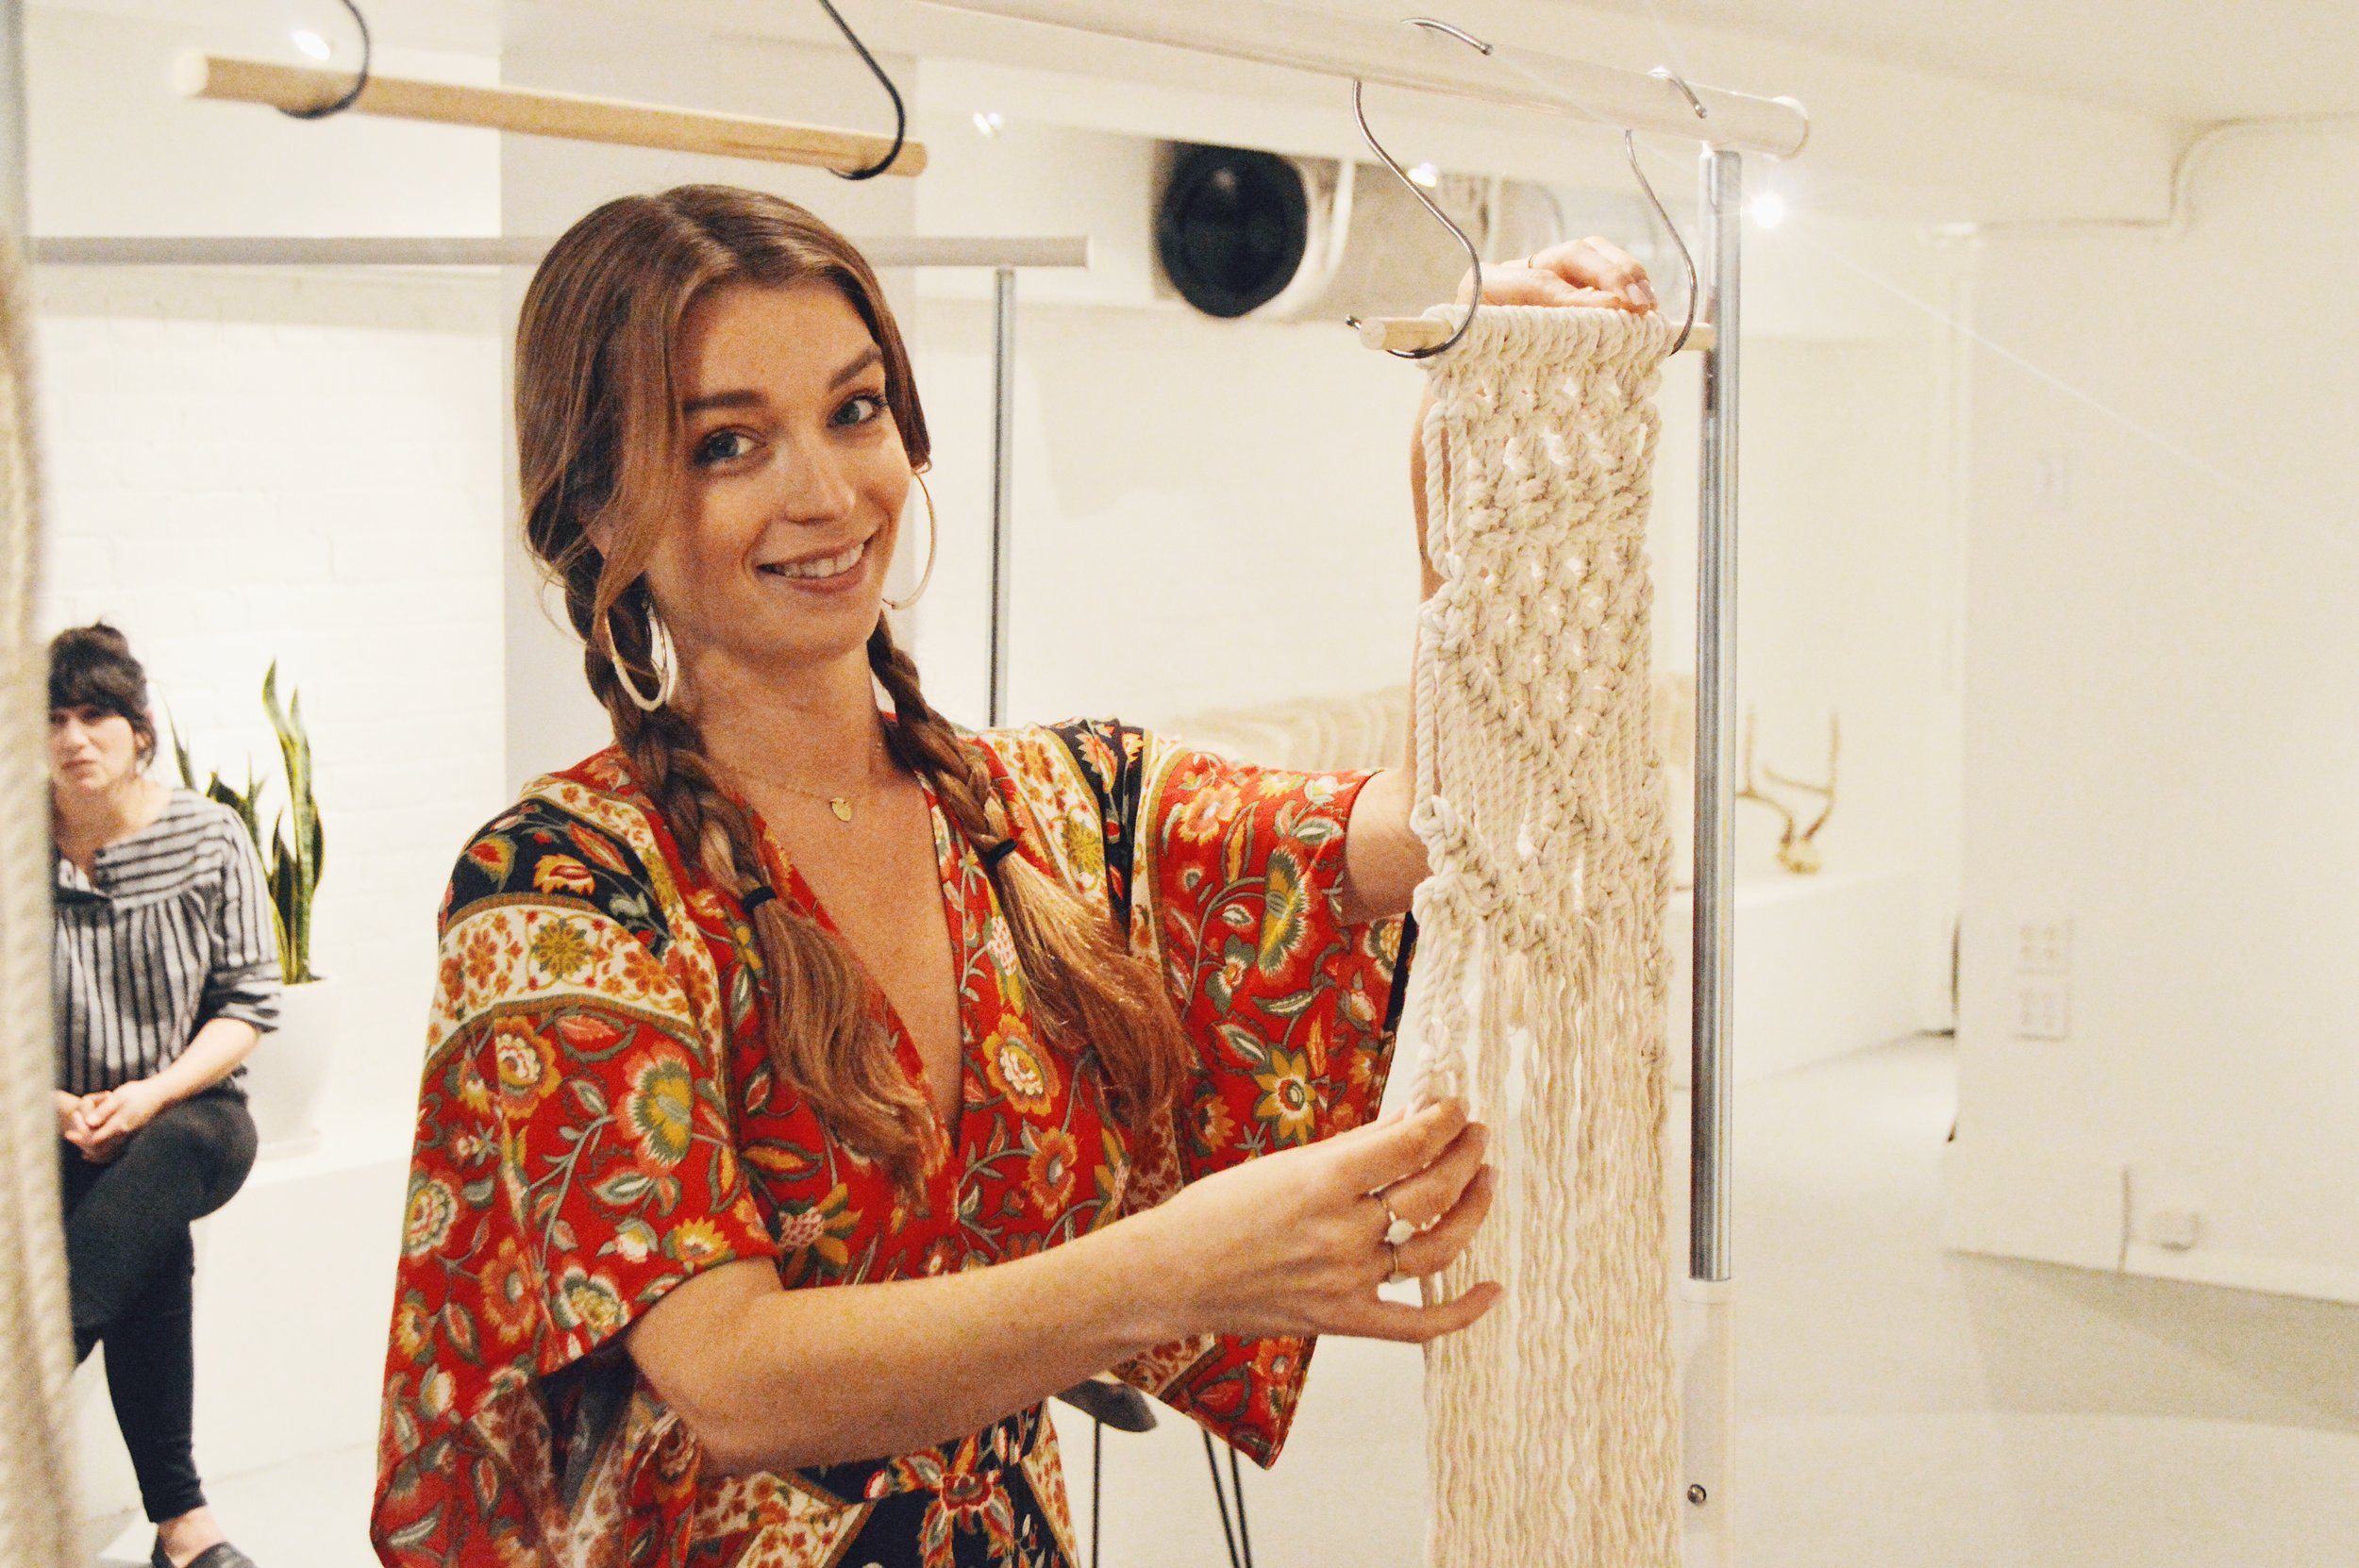 About the instructor: - Fiber Artist Christine Munroe works with many mediums to create her one of a kind art that brings style and warmth into any space. Utilizing ancient knotting technique in innovative and modern ways, her artwork spans from pieces small enough to fit in the palm of your hand to large home décor installations that transform a room.With a background in Fashion and Photography, Christine headed west from New York City to further her creative career. She believes that through creating and sharing art, it's possible for anyone to find a meaningful sense of peace, fulfillment and deeper purpose. She currently lives and creates in San Francisco, California.